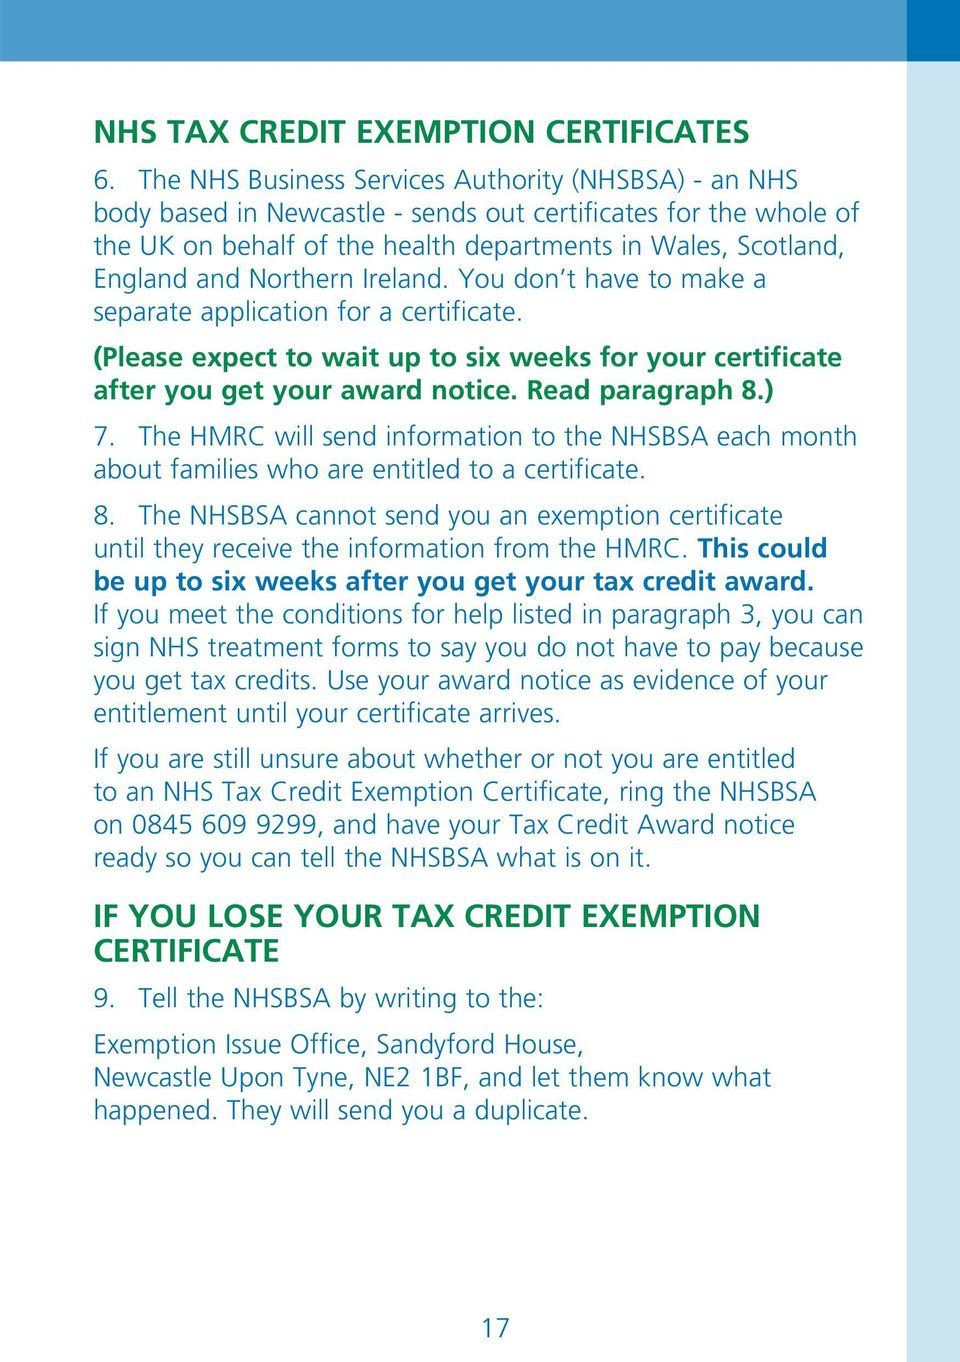 10d7ecb43d5 Northern Ireland. You don t have to make a separate application for a  certificate.